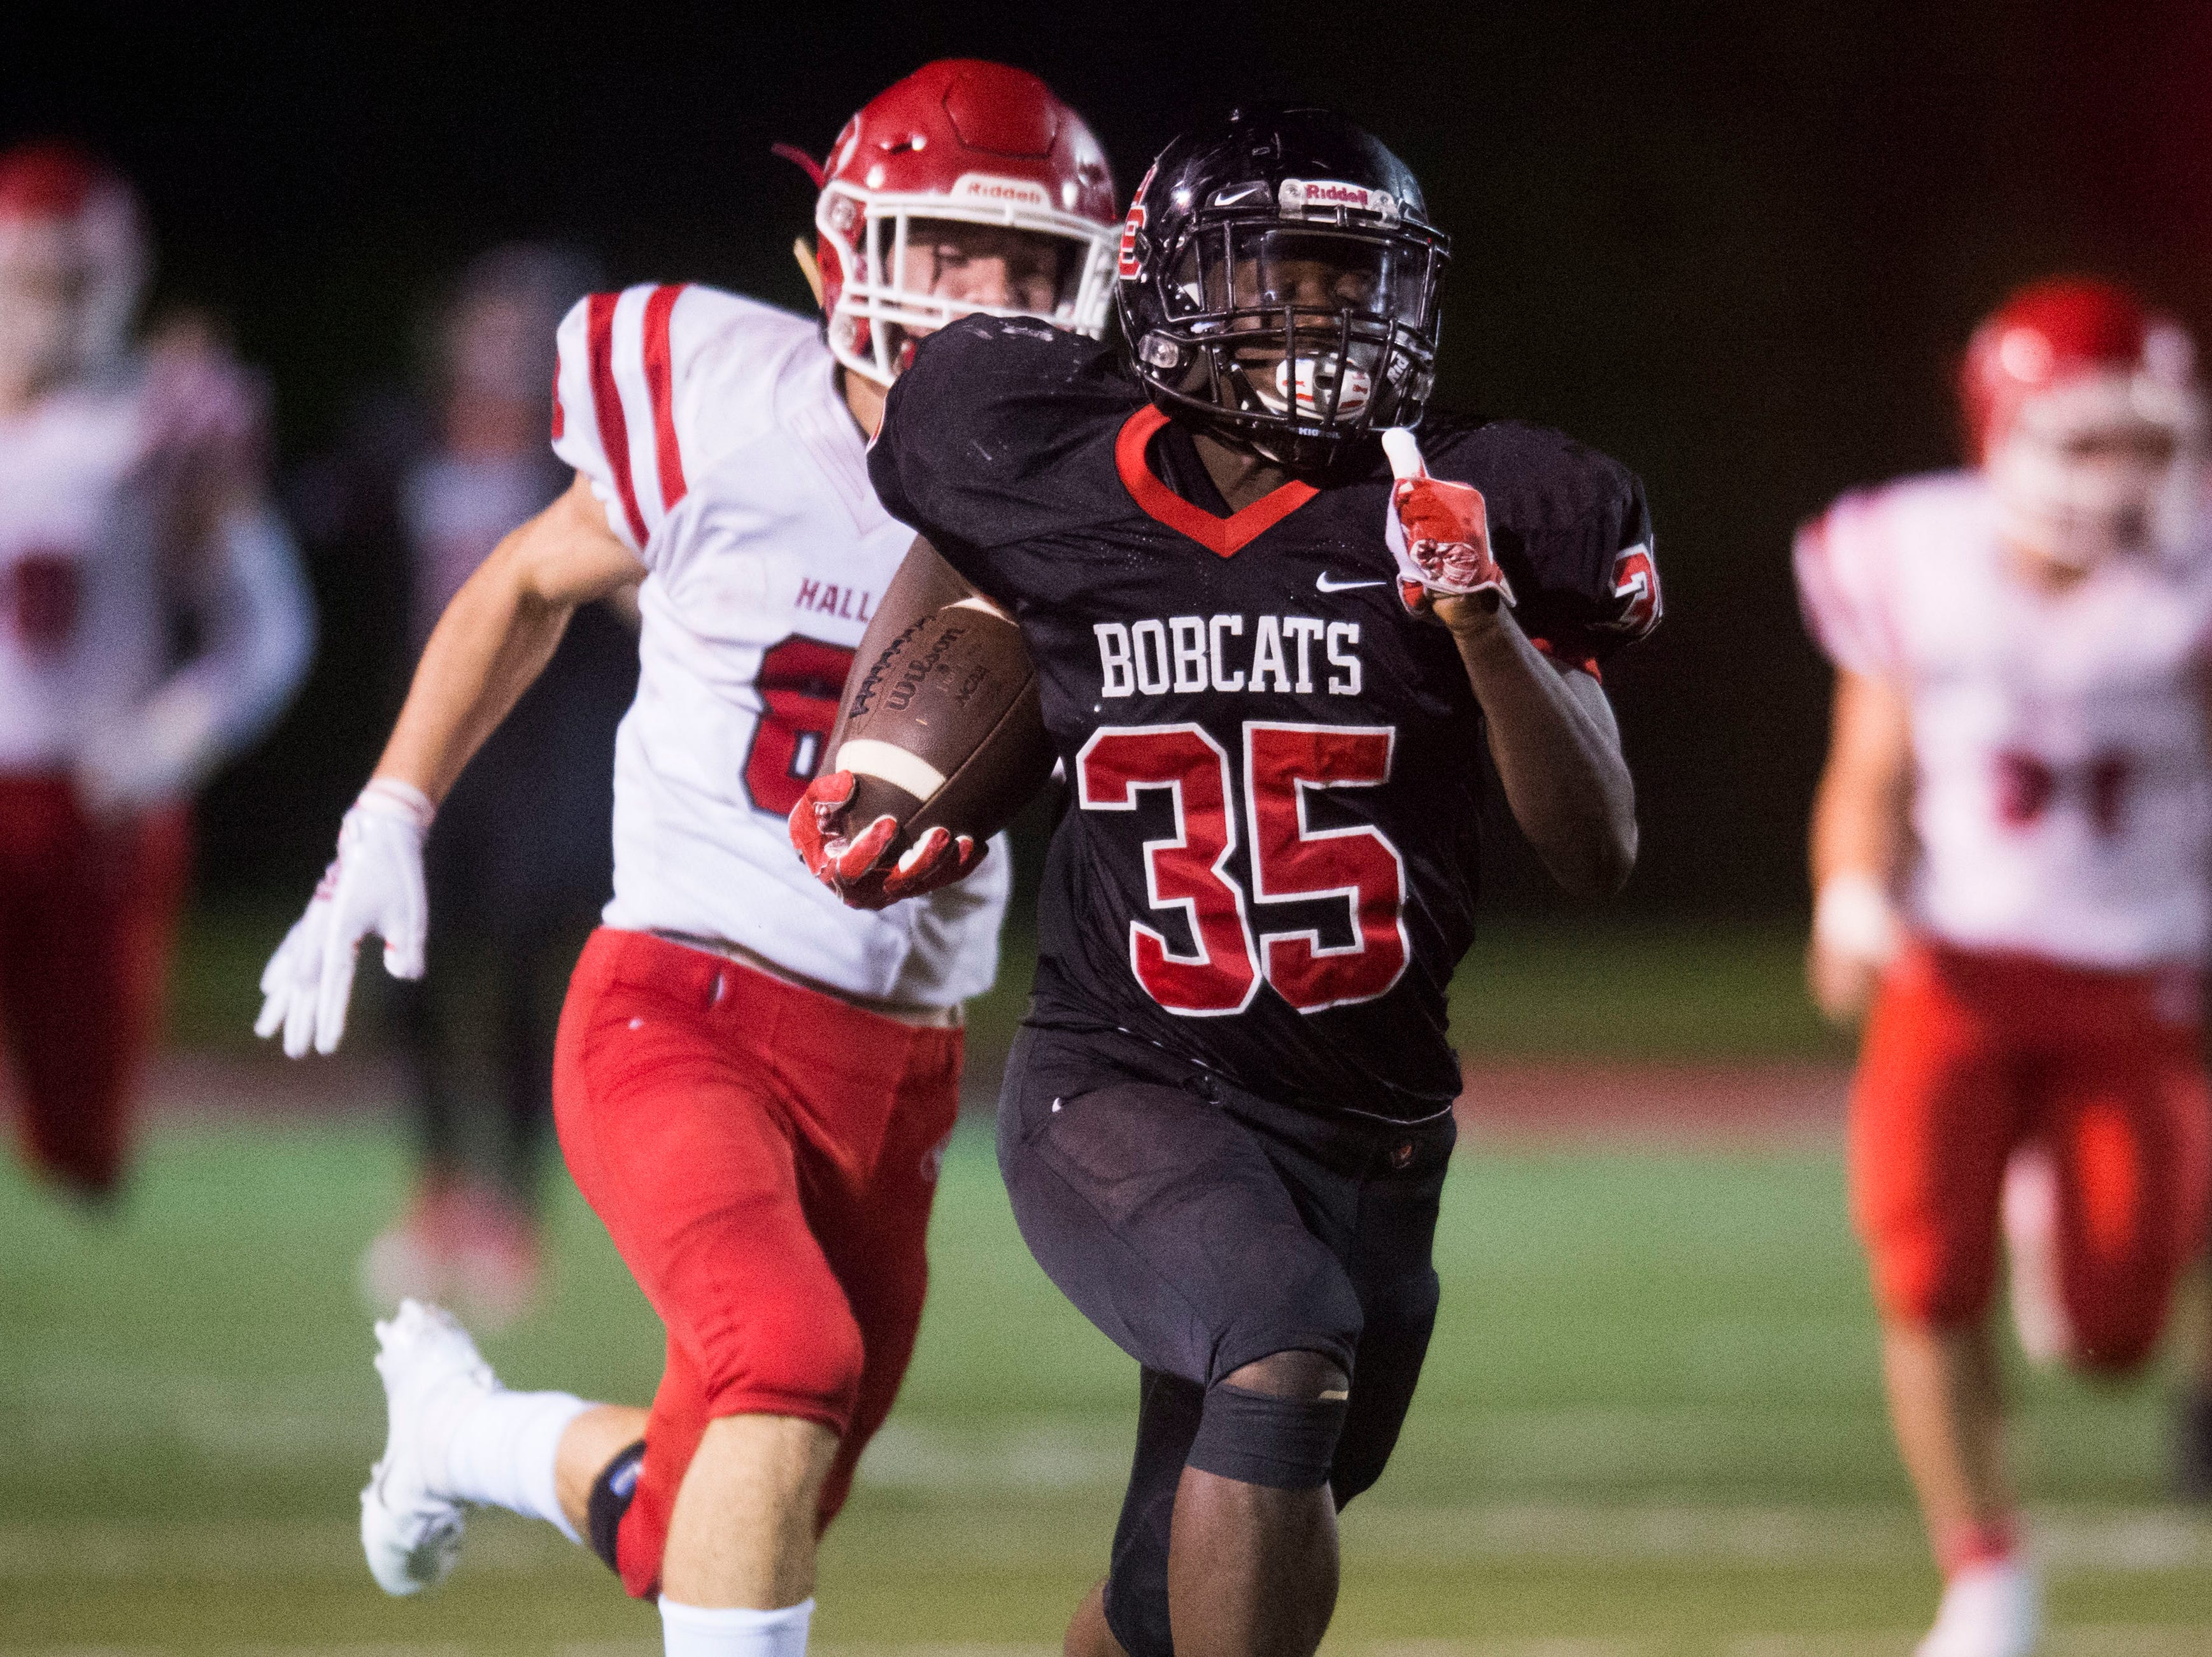 Central's Jason Merritts (35) sprints down the field during a high school football game between Central and Halls at Central Friday, Sept. 28, 2018. Central won 49-17.